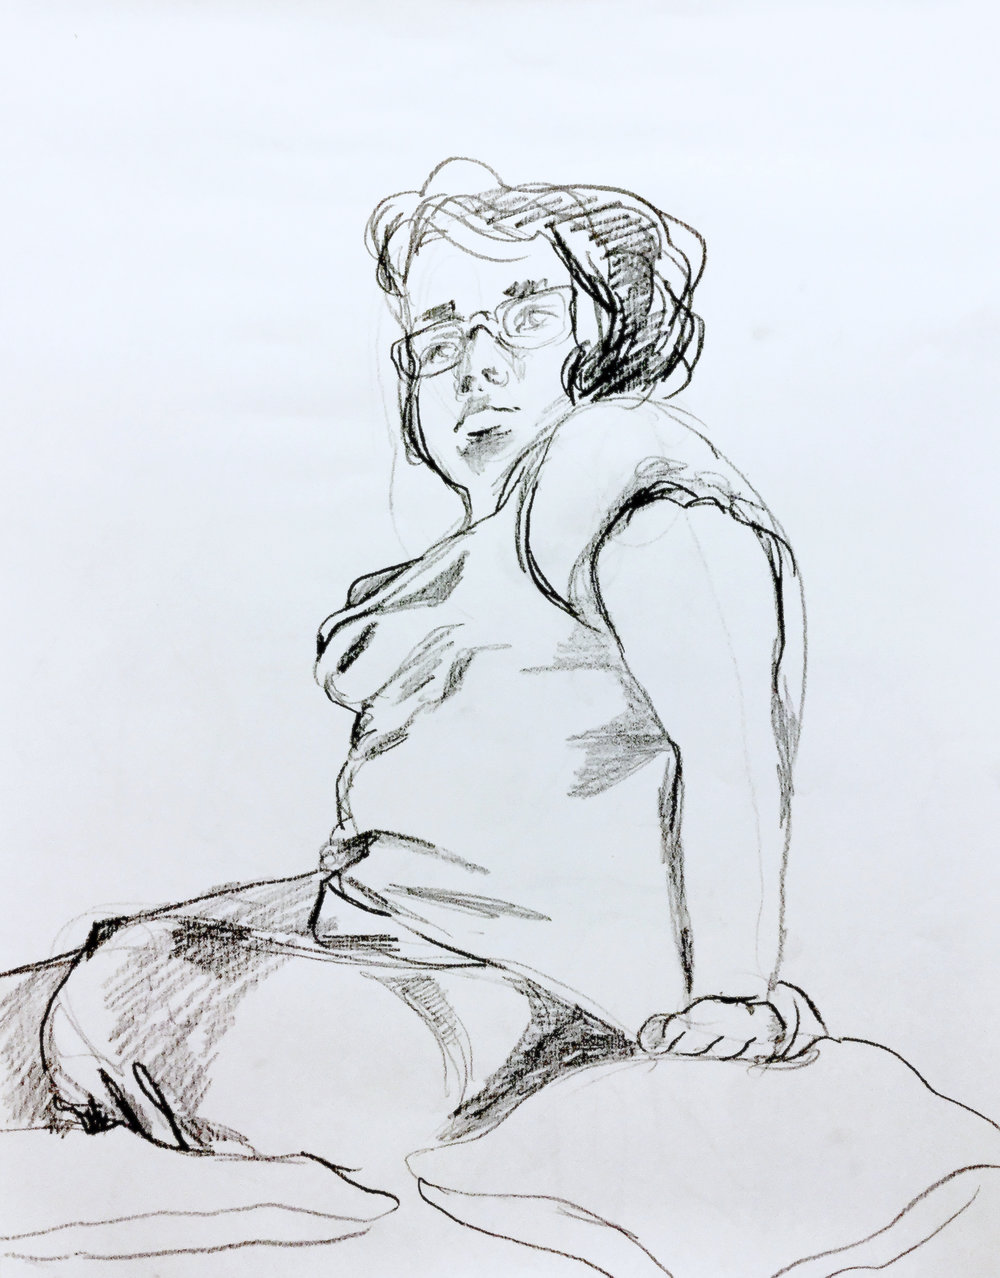 COMMUNITY EDUCATION TEEN PORTFOLIO DEVELOPMENT- Munson Williams and Proctor Arts Institute.    Peer Figure Sketch   Students take turns modeling for peers in quick ten minute poses.  Charcoal on Paper